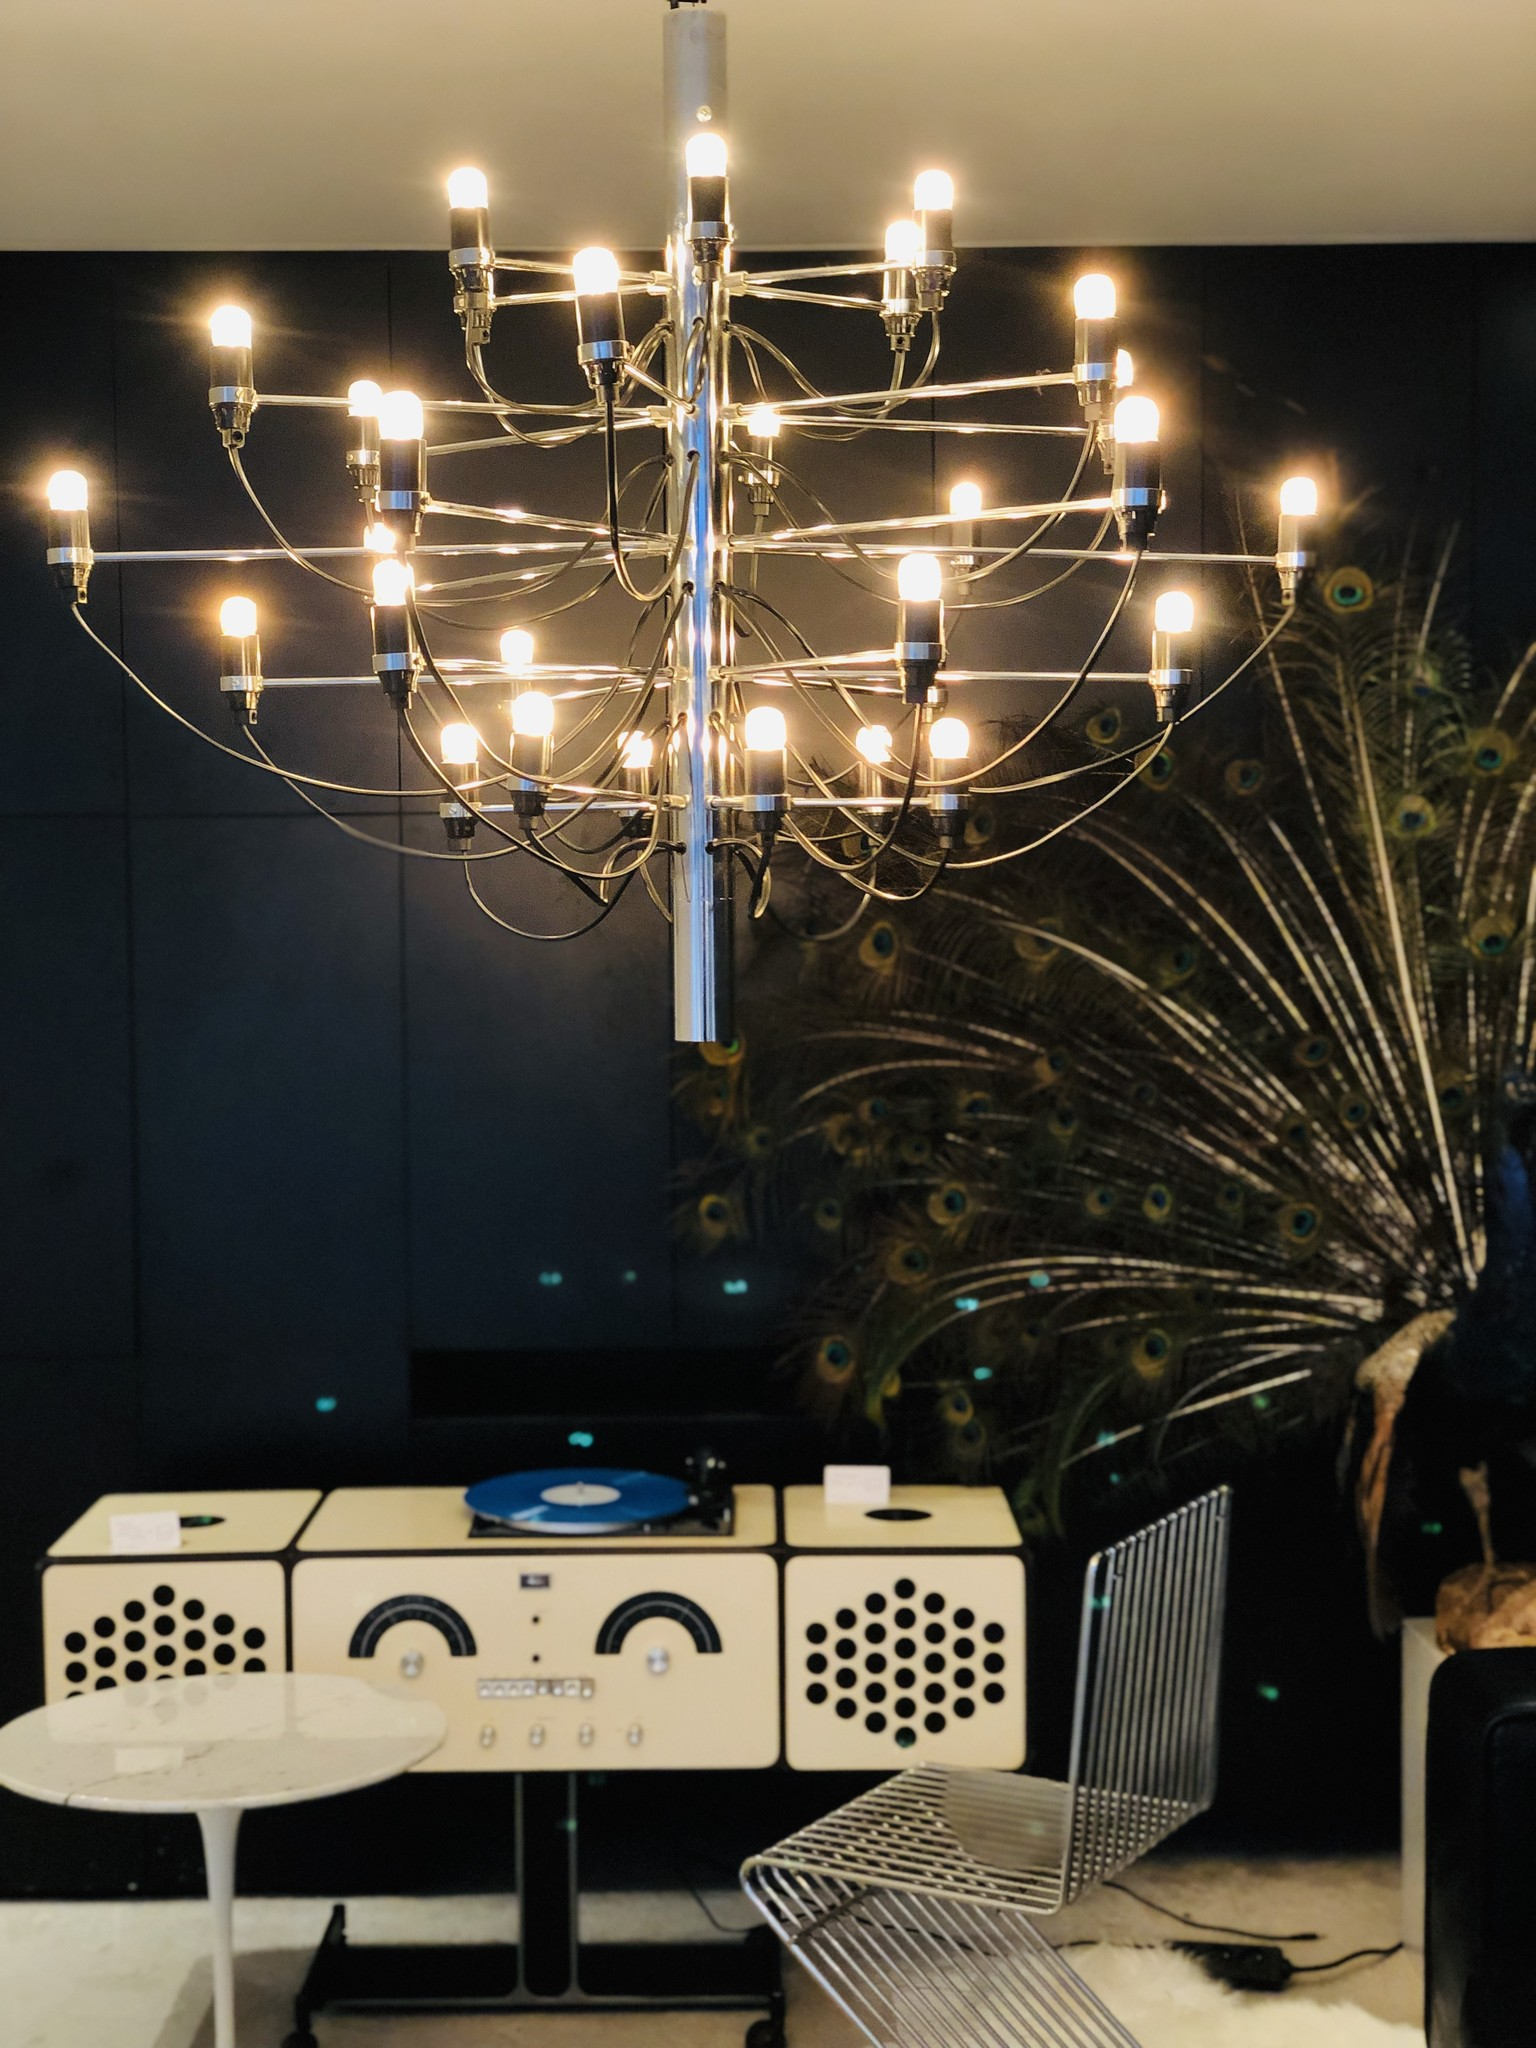 Original Sarfatti chandelier by Gino Sarfatti for Flos